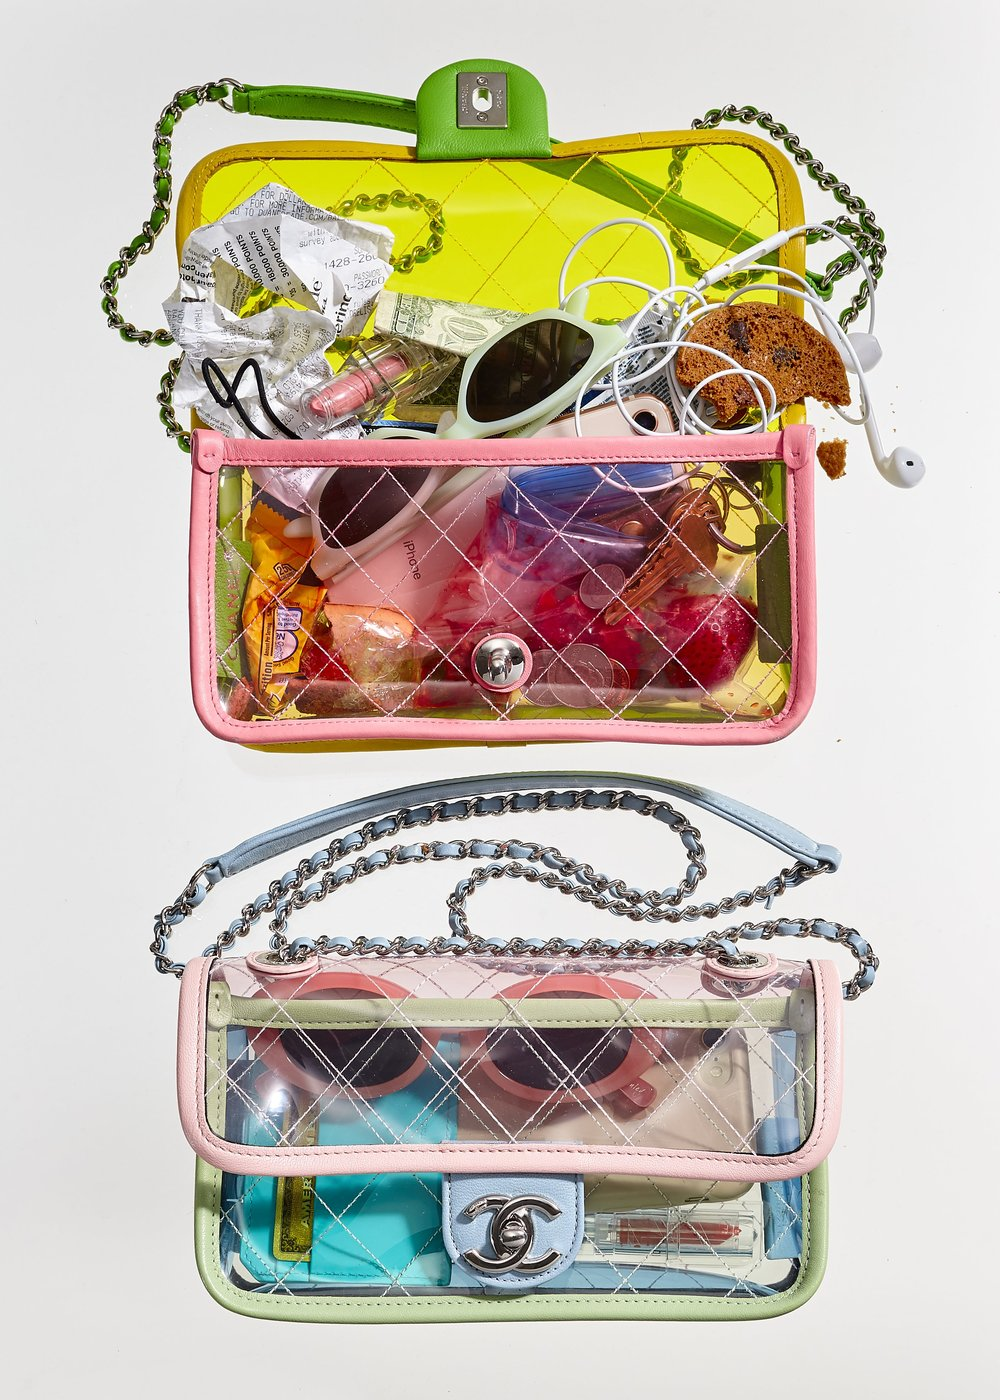 Chanel handbags, Photo: F. Martin Ramin for WSJ